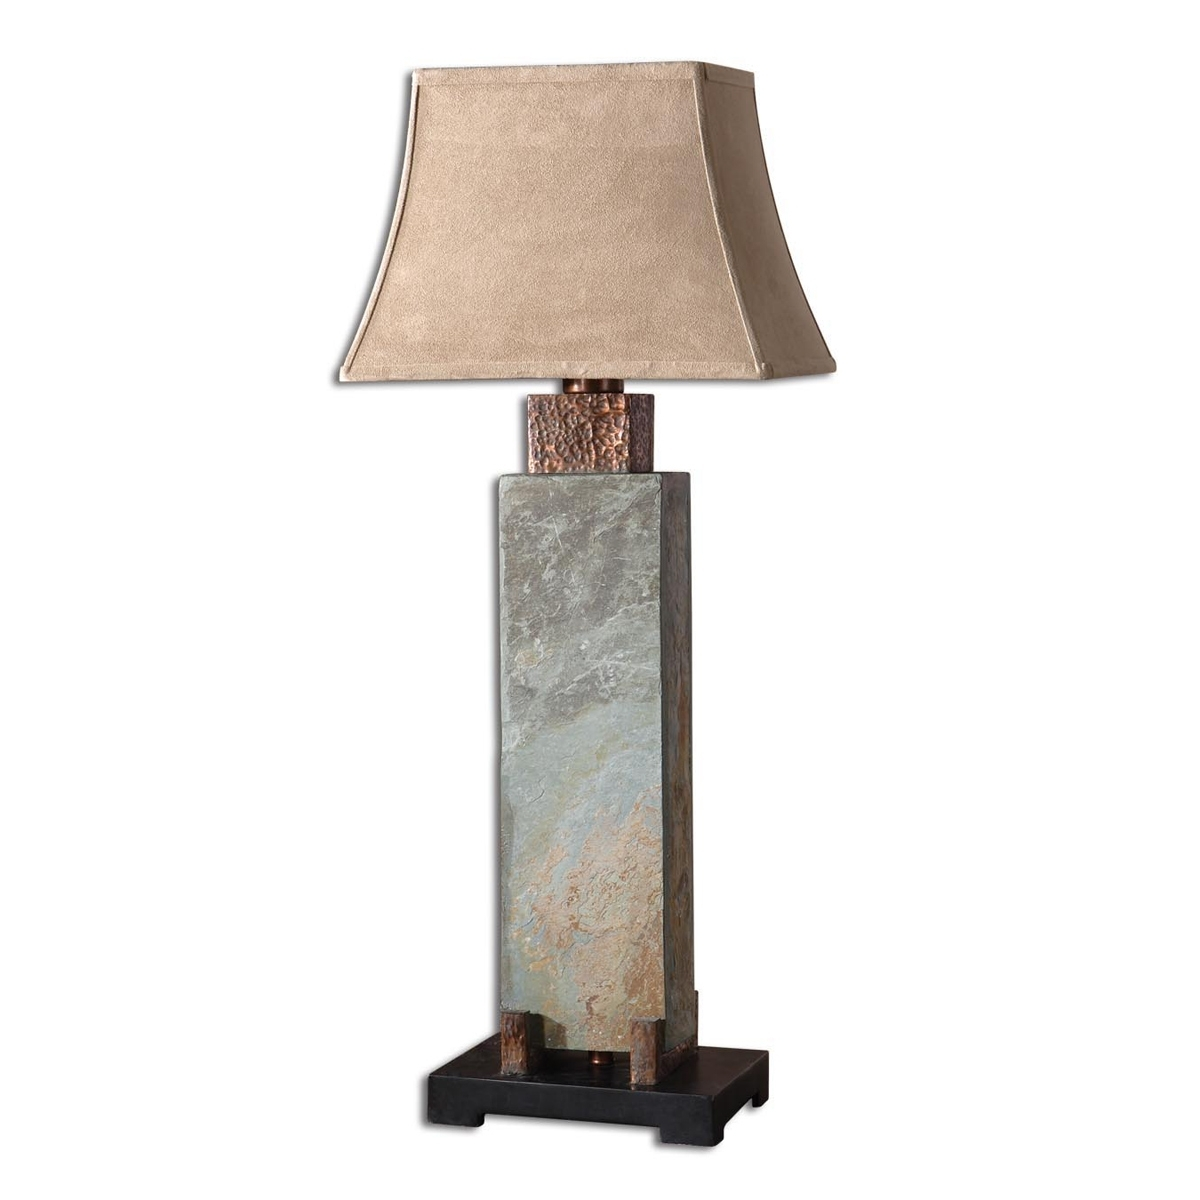 Creative Decoration Rustic Table Lamps For Living Room Rustic Table Regarding Tall Table Lamps For Living Room (#2 of 15)